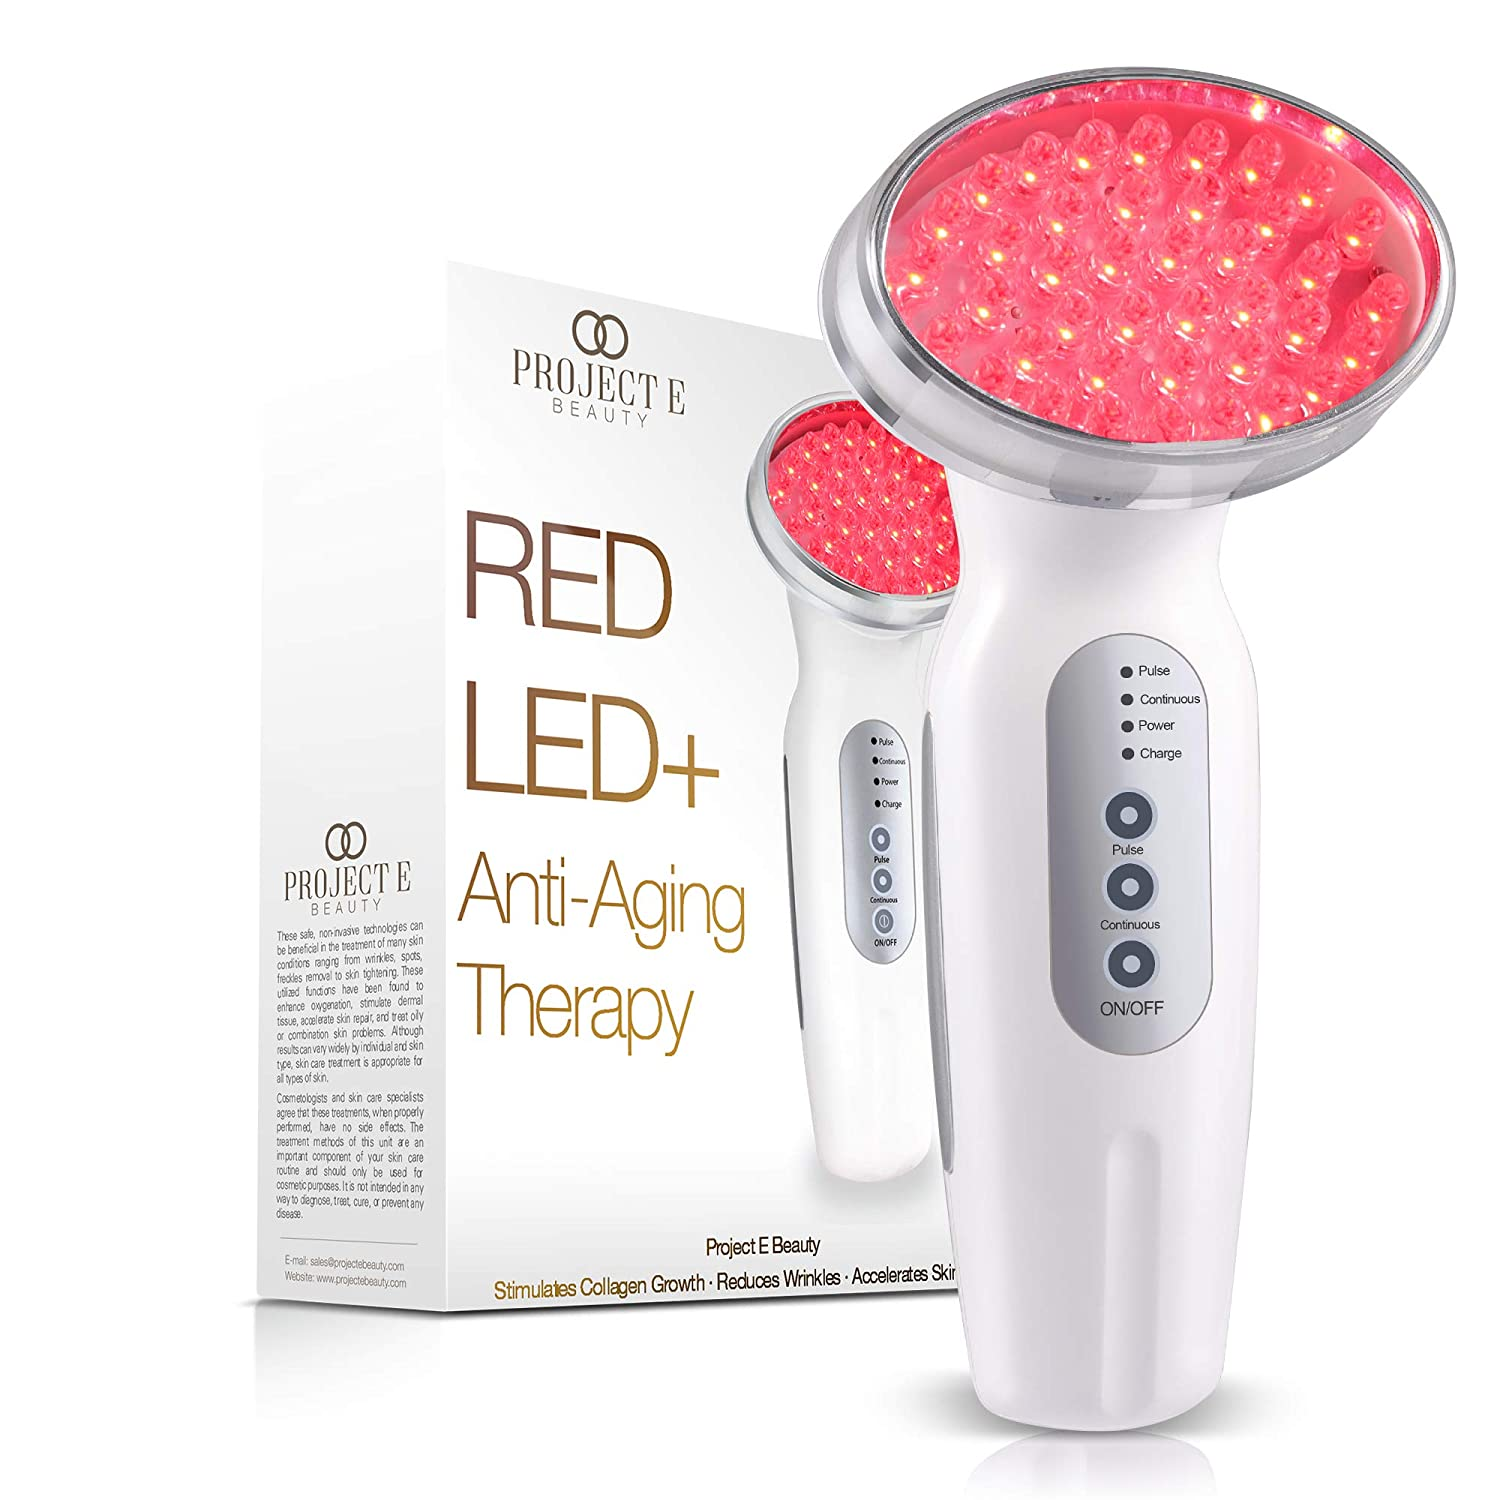 Project E Beauty RED Light Wireless Col Photon Therapy SALENEW very popular It is very popular Machine